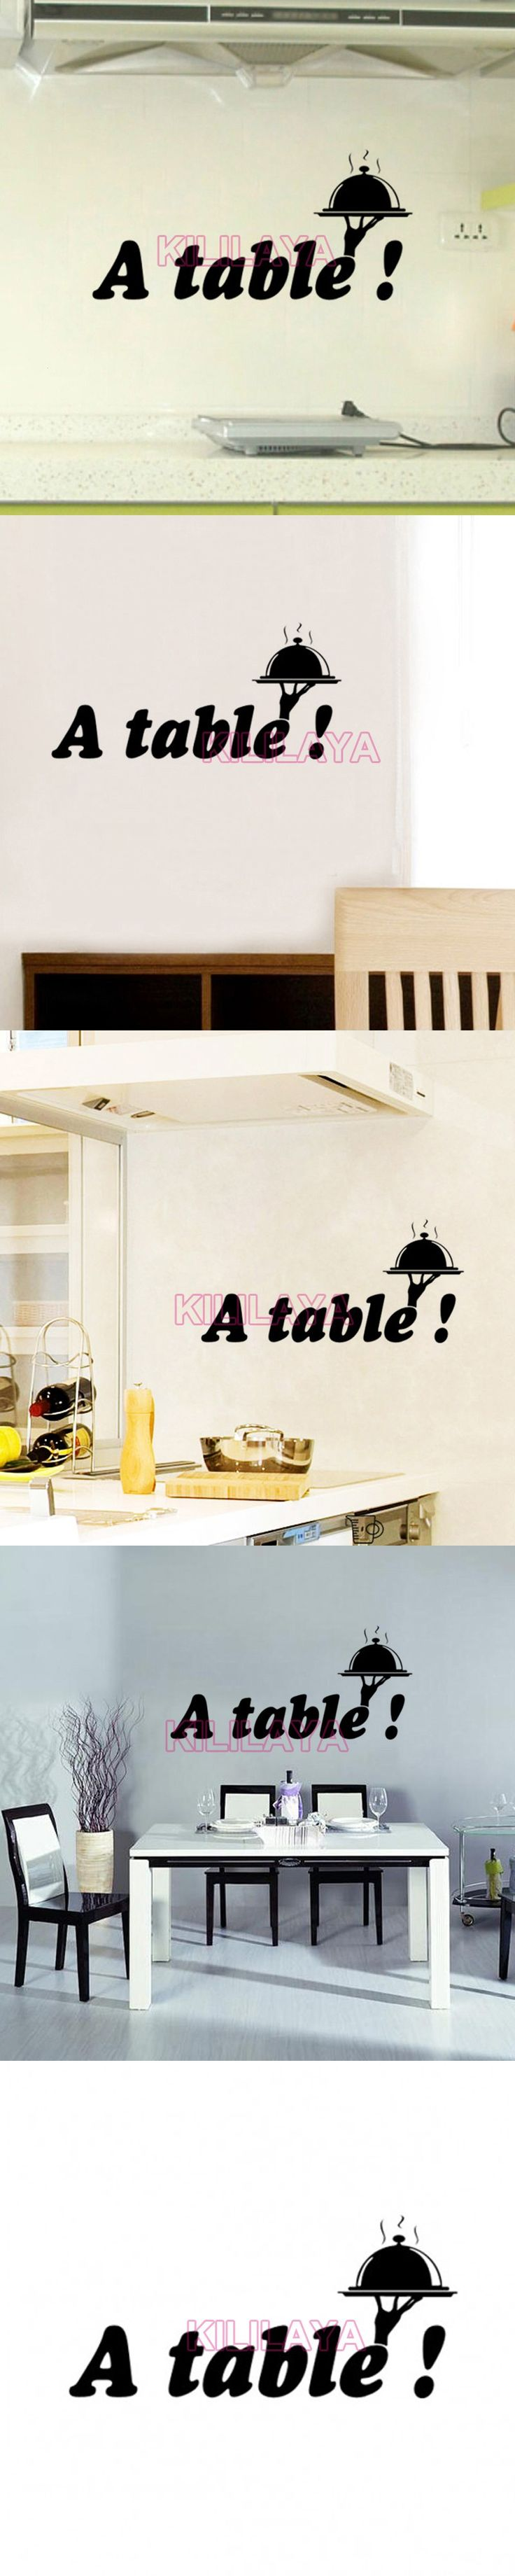 Mural Tiles For Kitchen Decor 66 Best Images About Stickers On Pinterest Mural Wall House